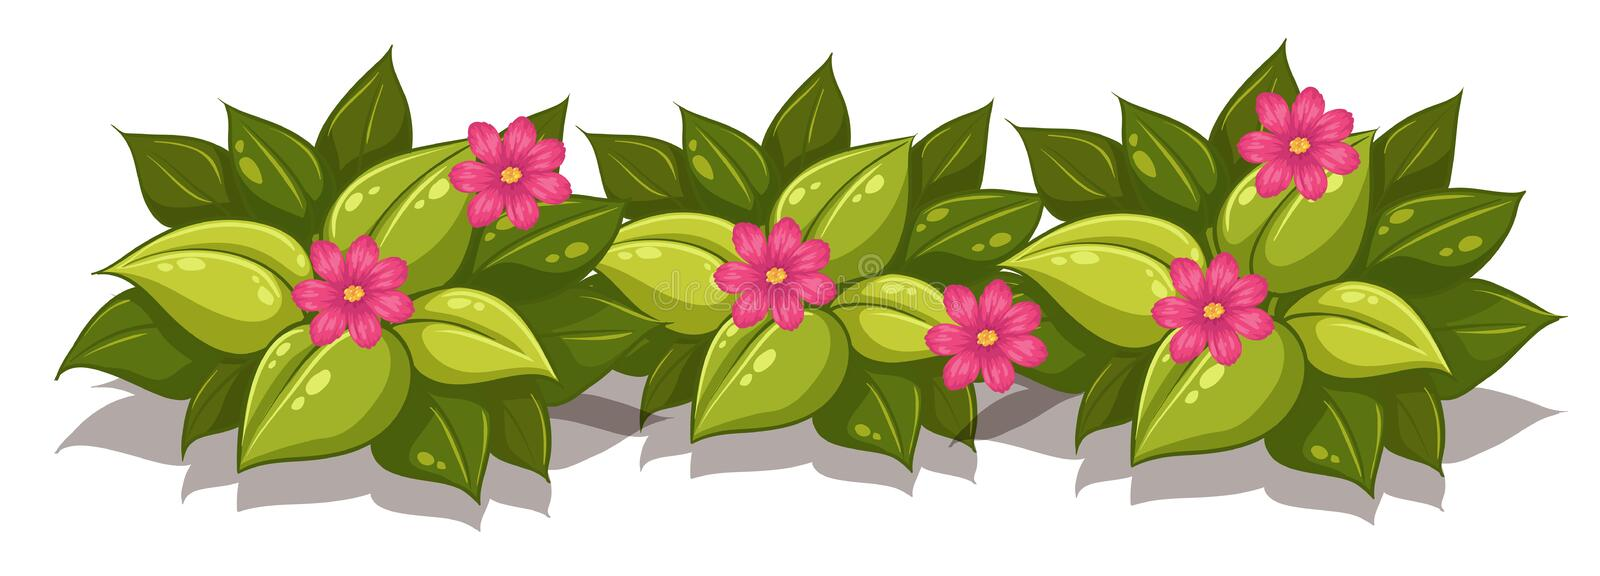 Leafy bush with flowers royalty free illustration